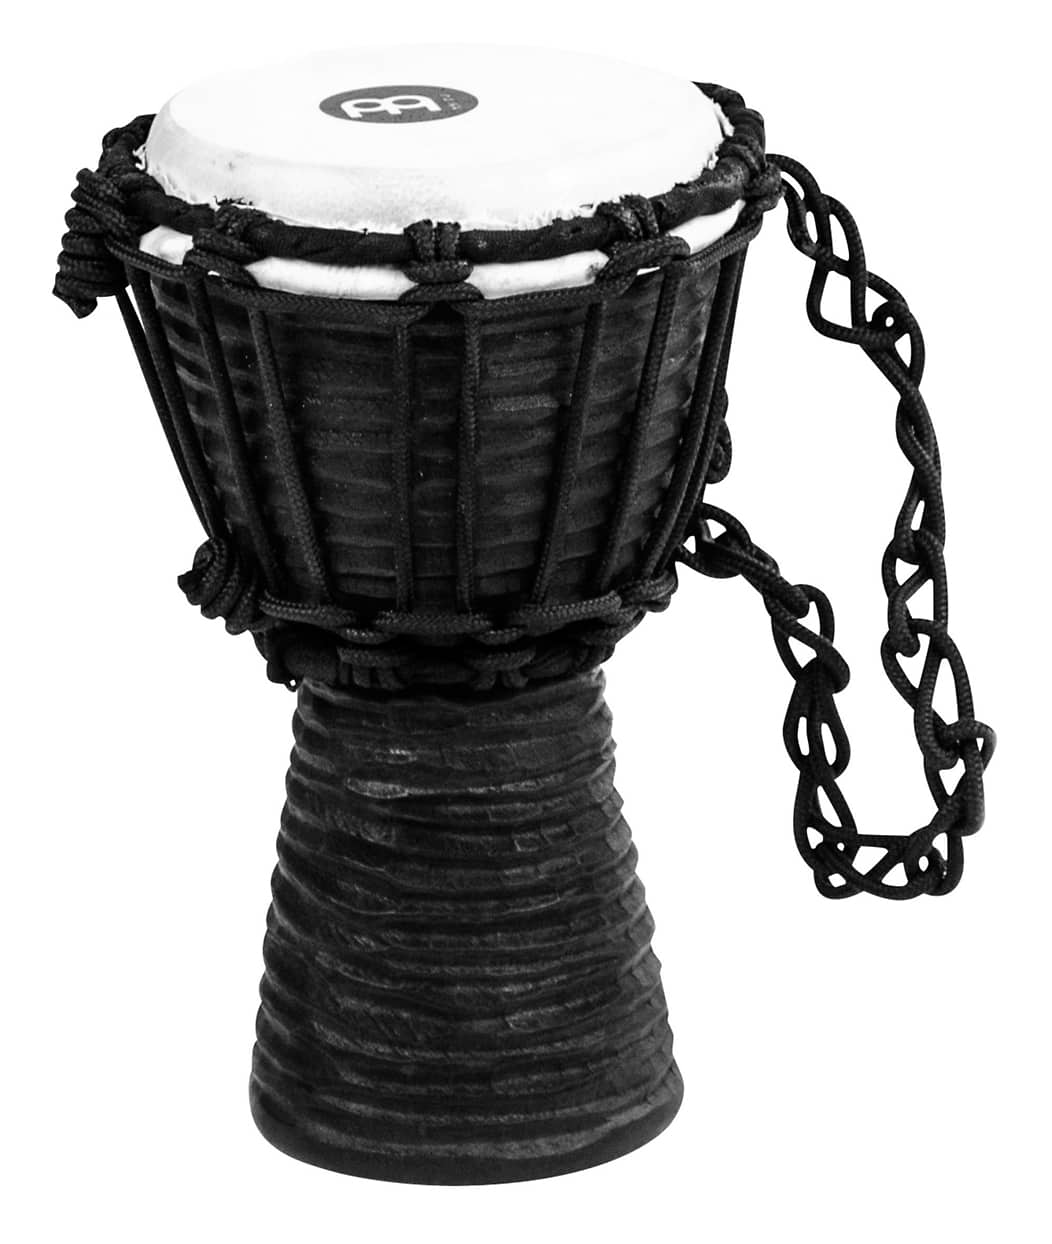 Meinl 4-in Headliner Black River Series Rope Tuned Djembe $9.99 at Musician's Friend + Free Shipping